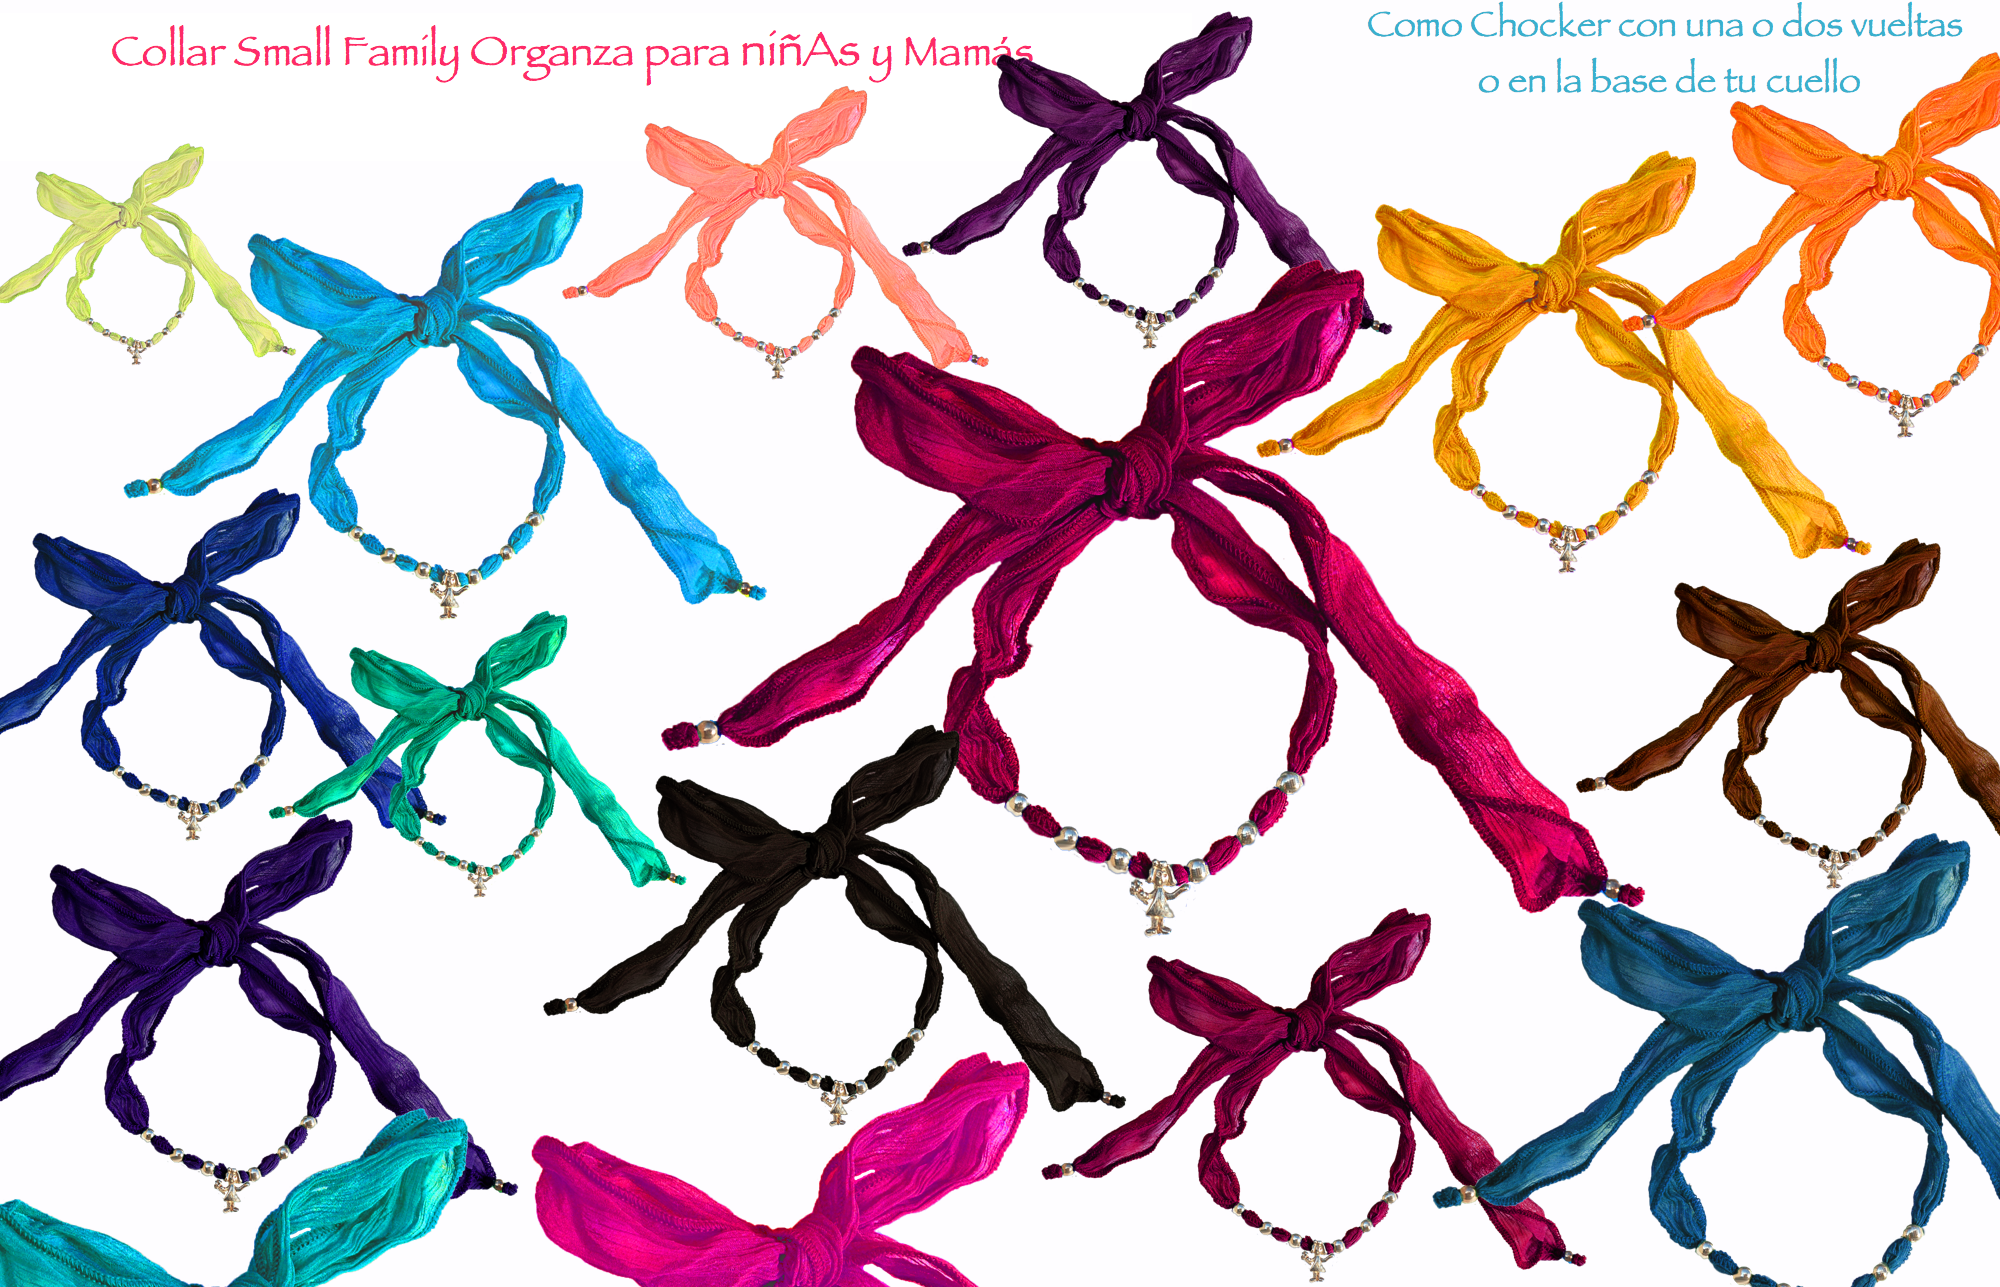 Colors chokers gasa small family Organza